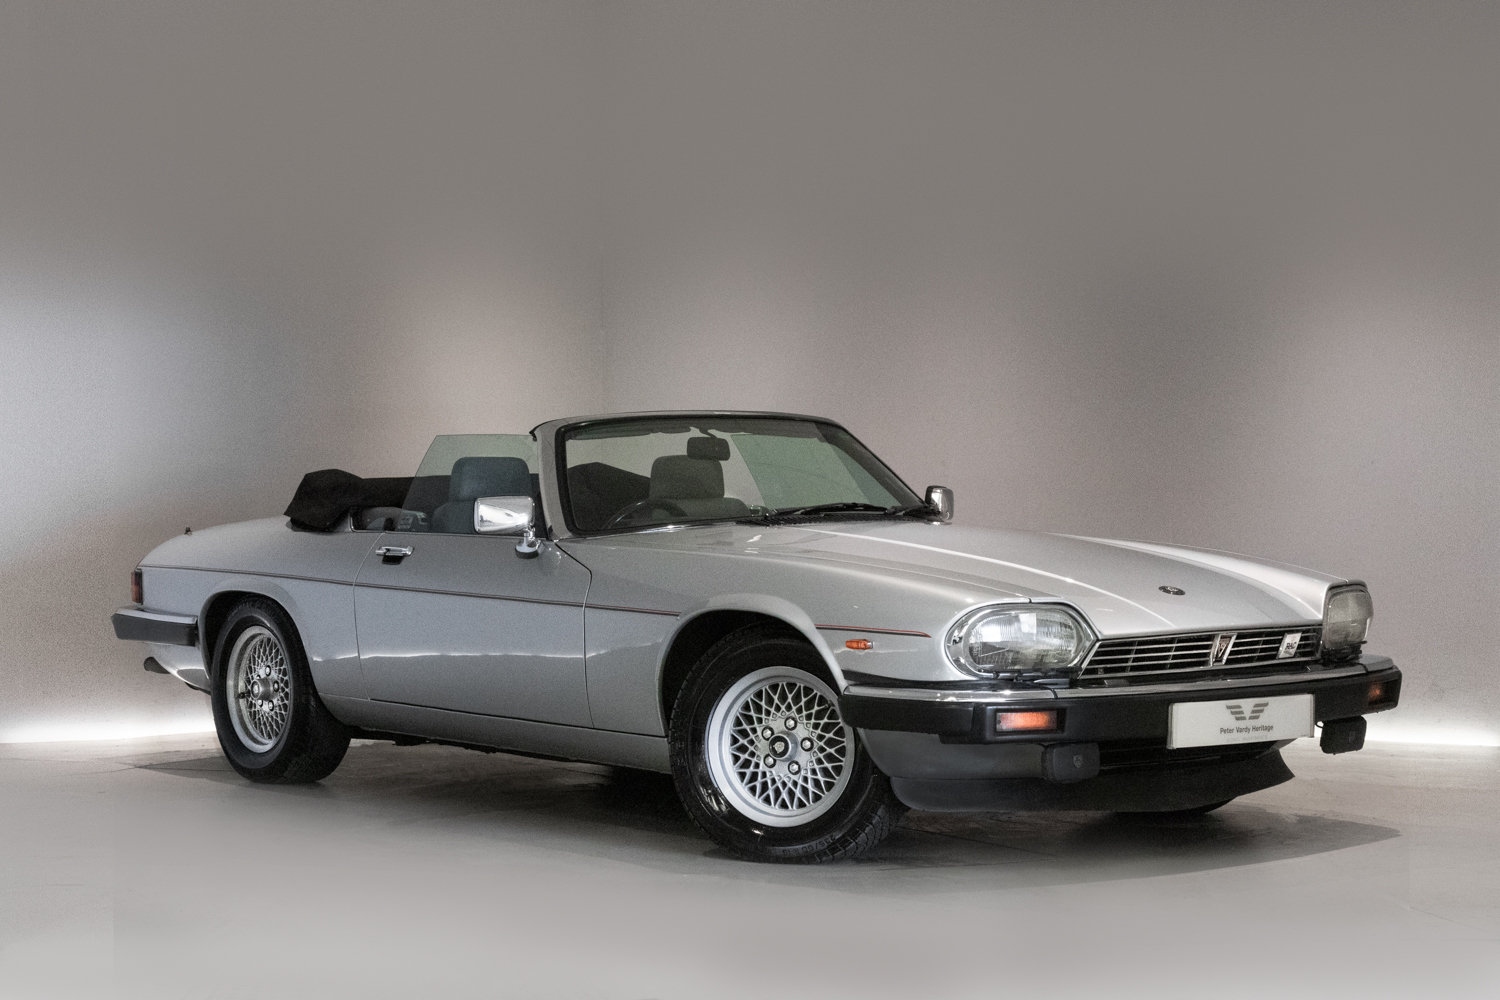 1989 Outstanding Condition Jaguar XJS V12 Convertible Automatic  For Sale (picture 1 of 6)